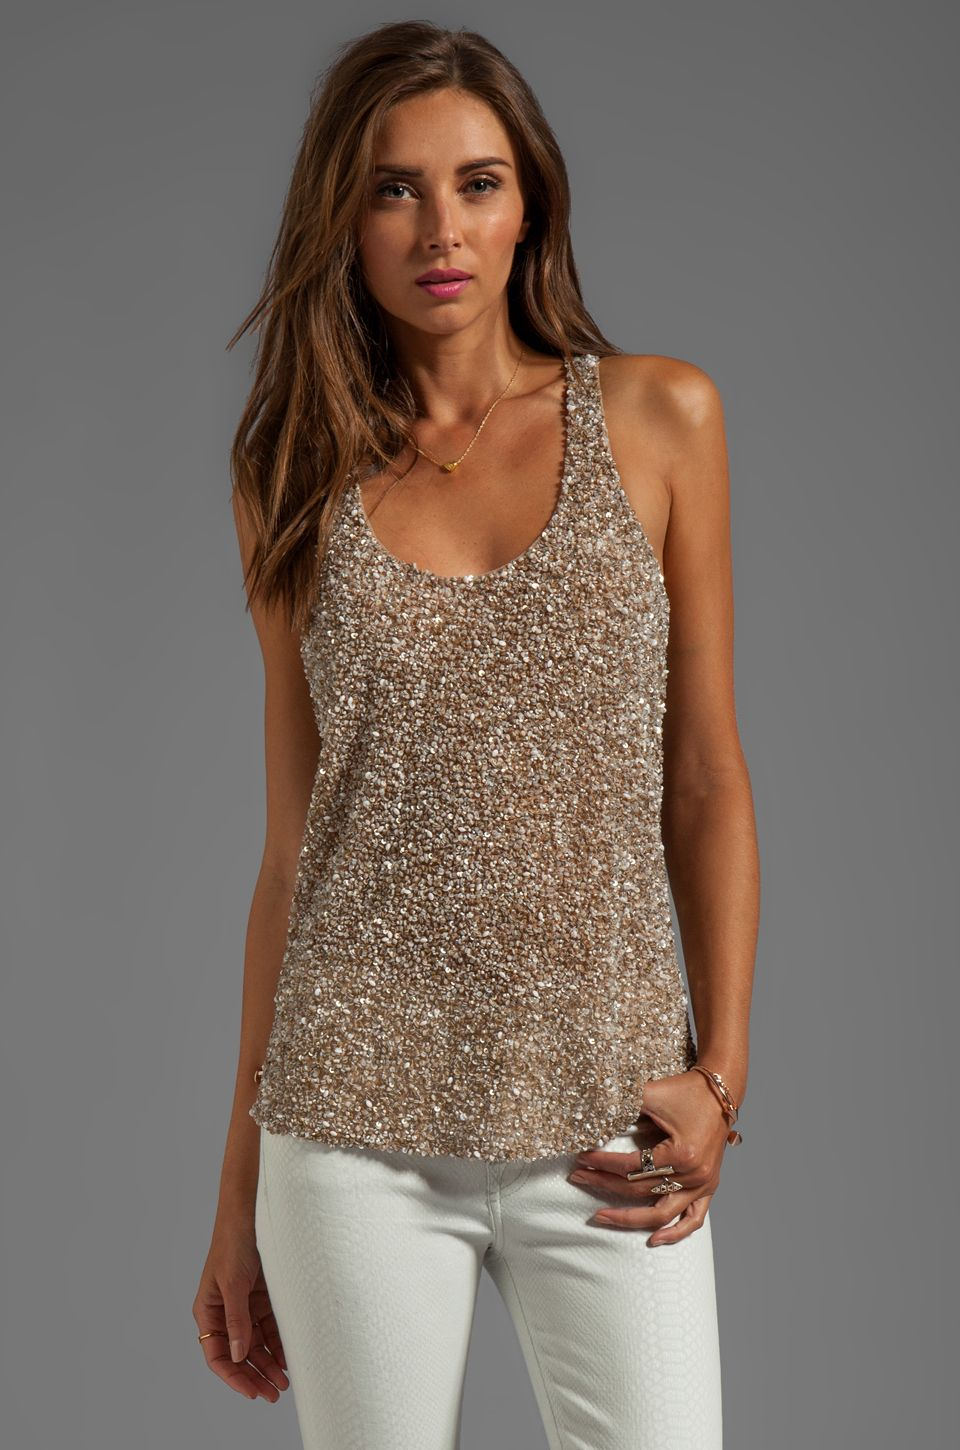 PARKER Leah Sequin Tank in Nude at Revolve Clothing - Free